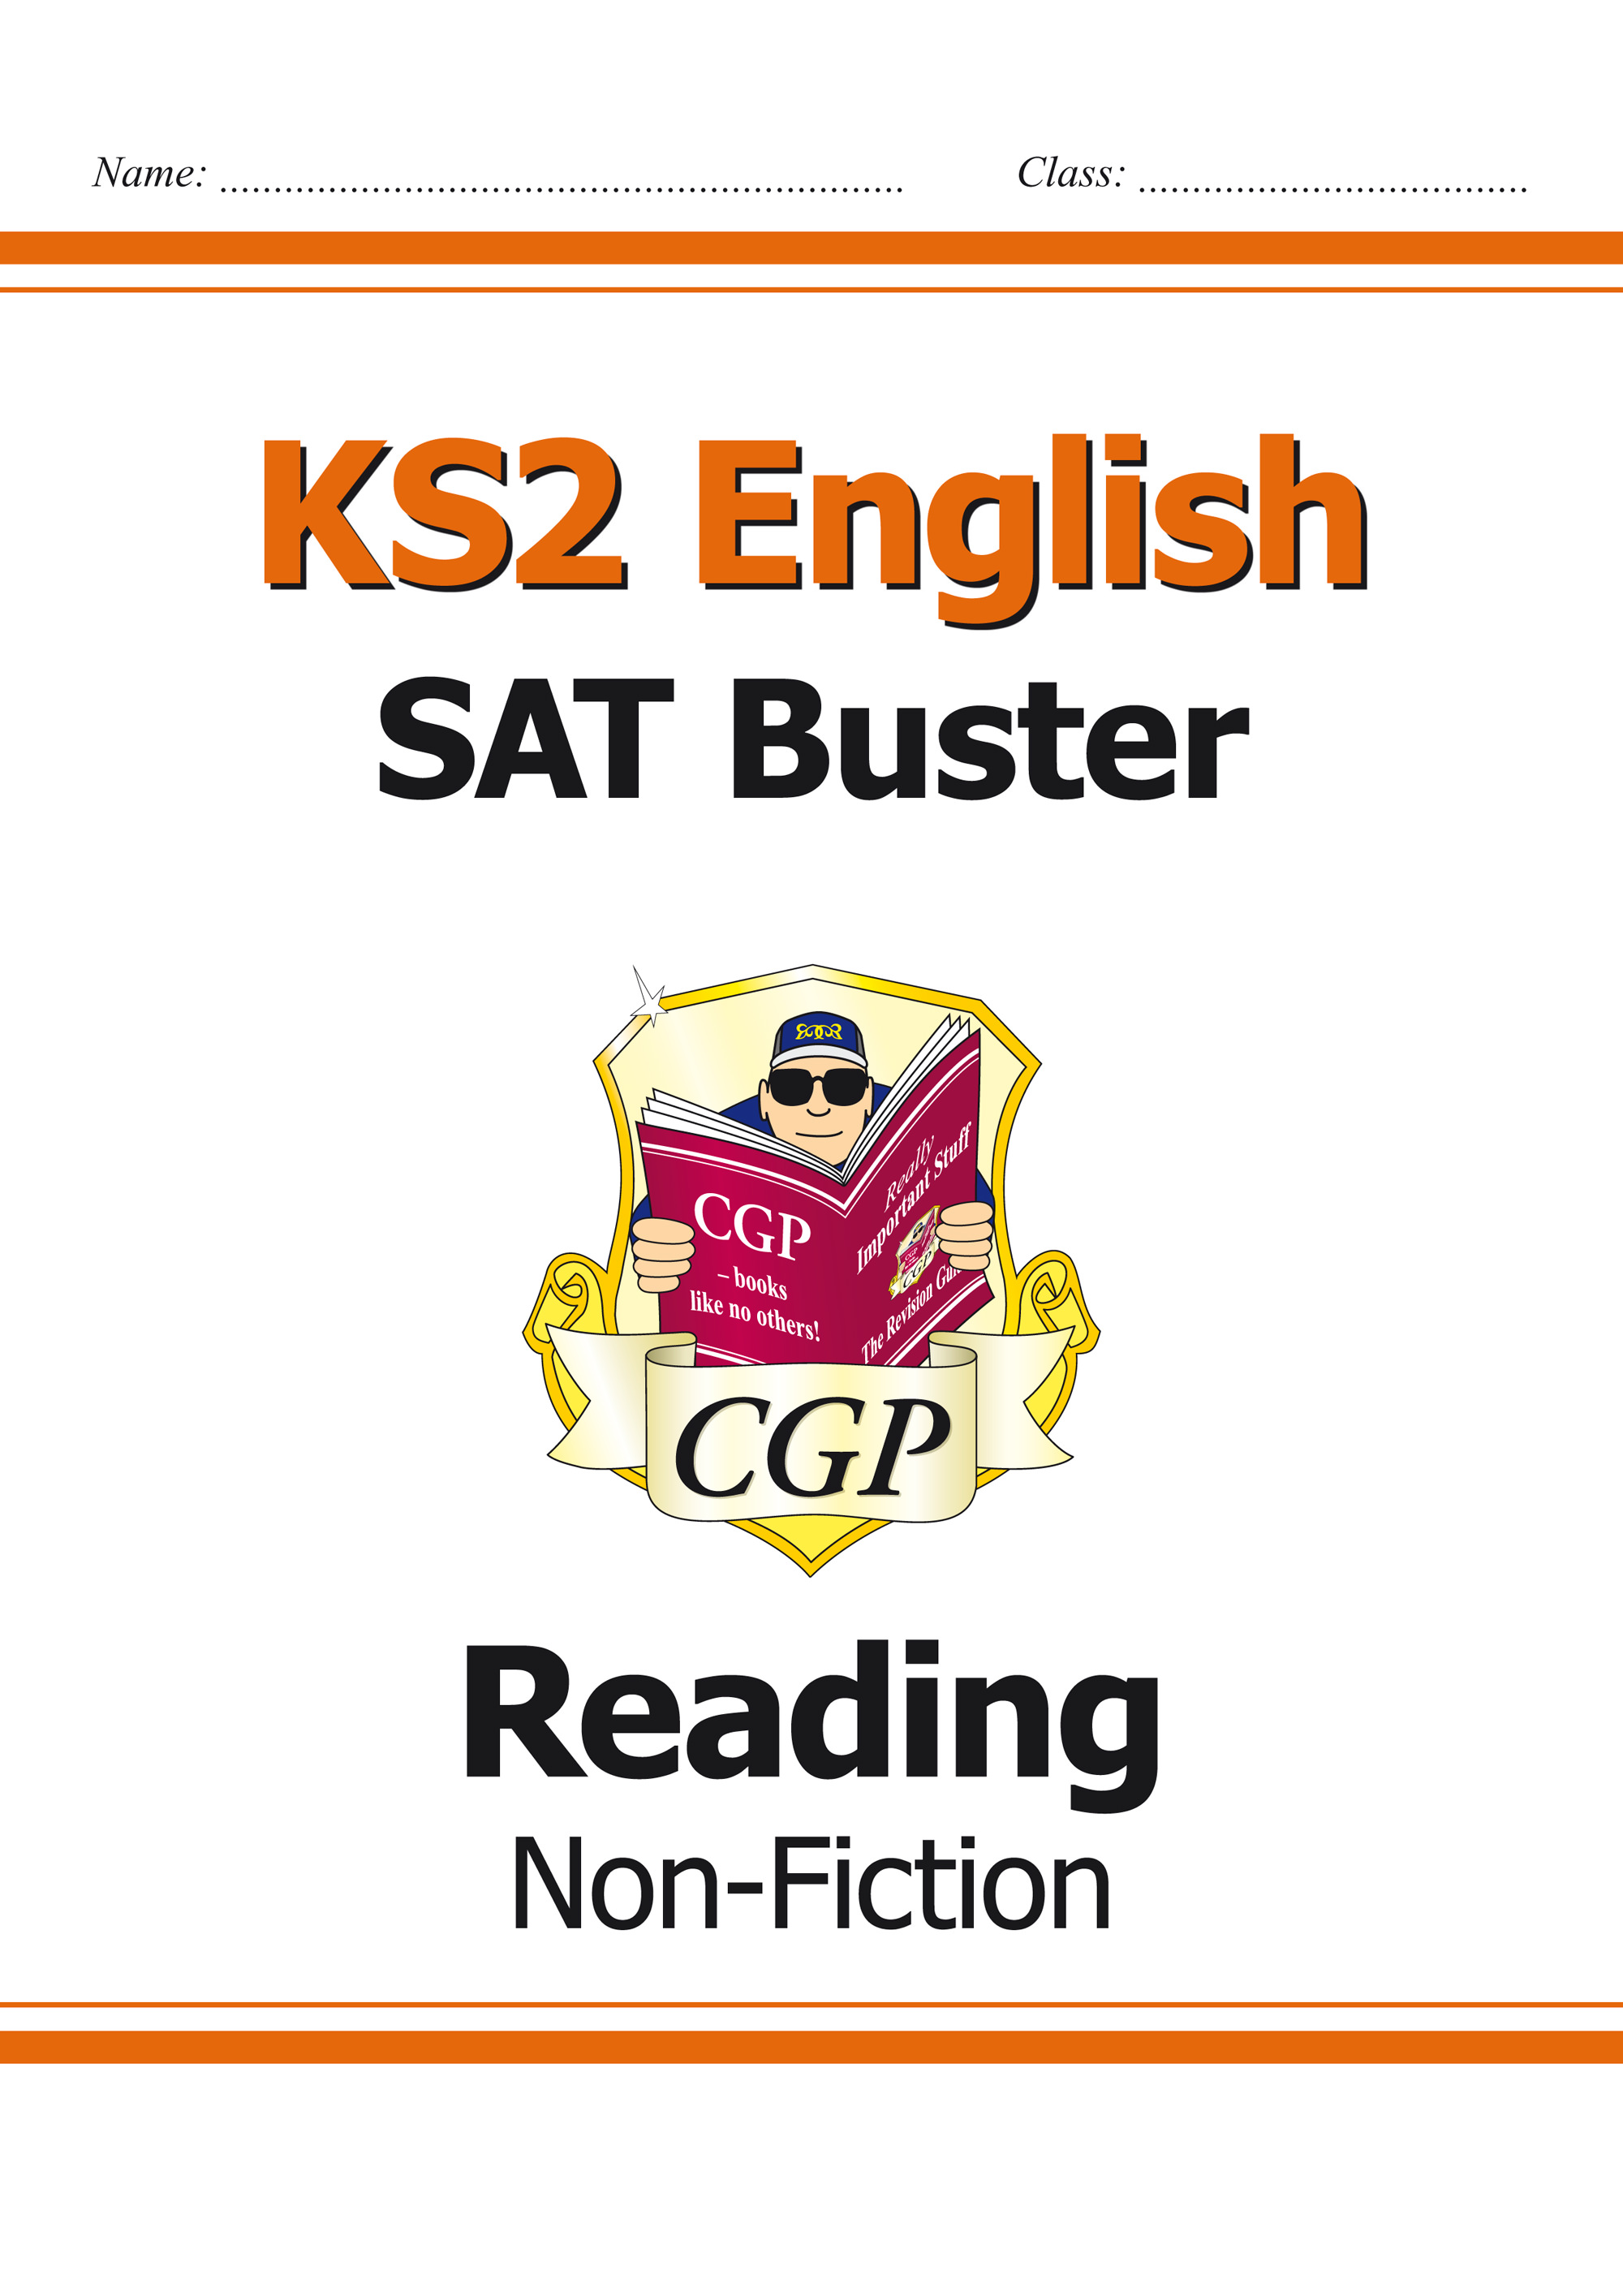 E6FRN21 - KS2 English Reading SAT Buster: Non-Fiction Book 1 (for tests in 2019)